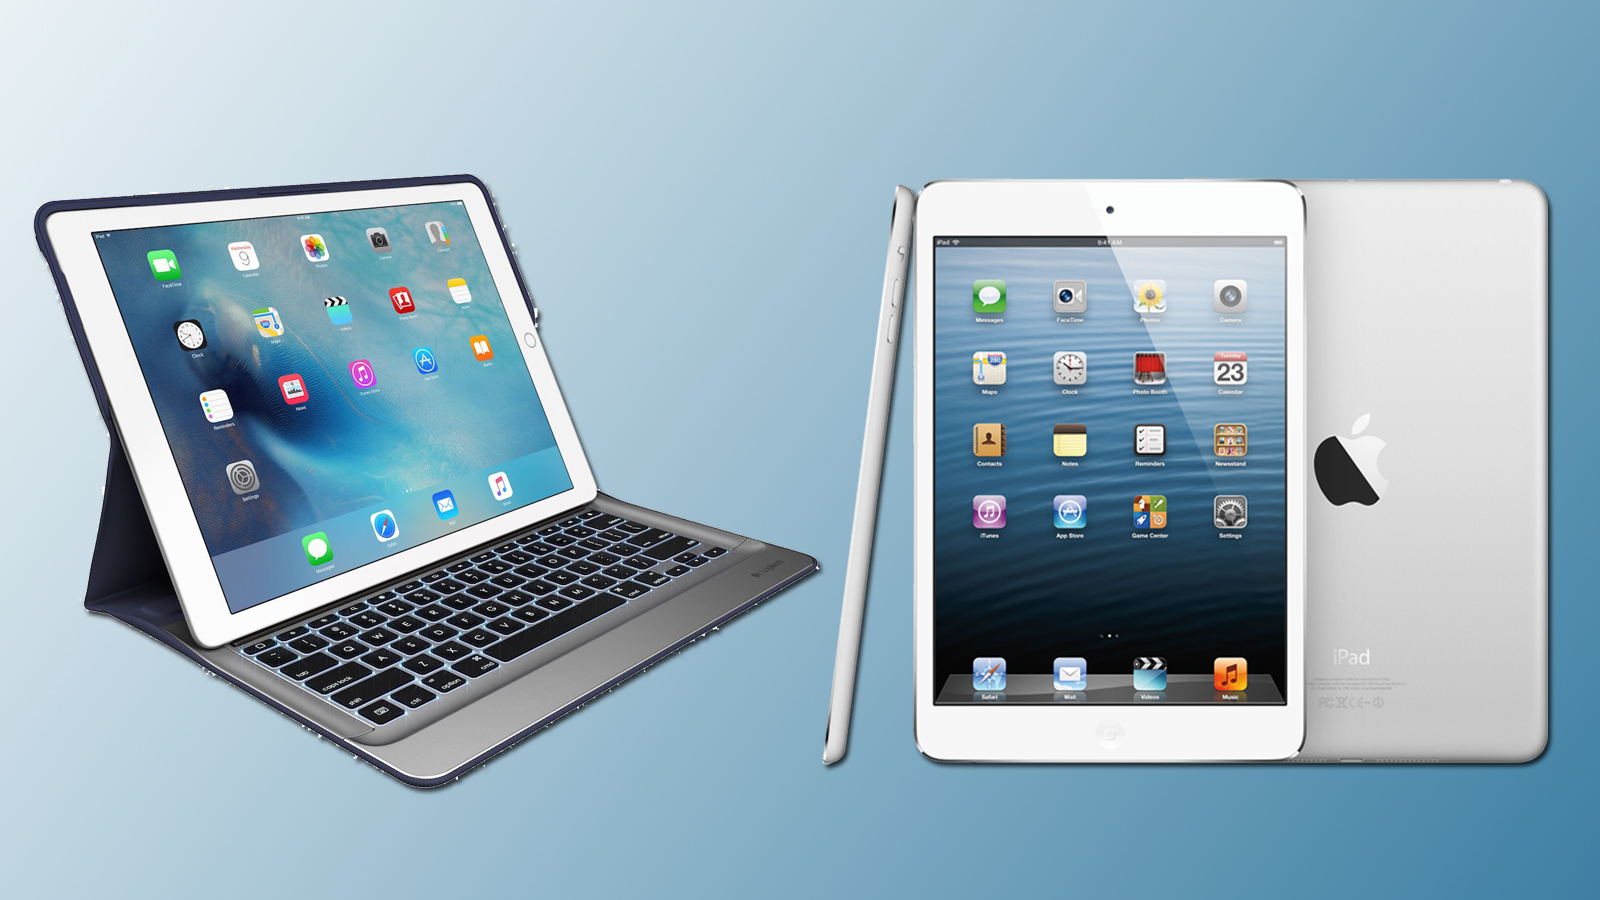 Tastiera logitech solar folio per ipad disponibile su amazon